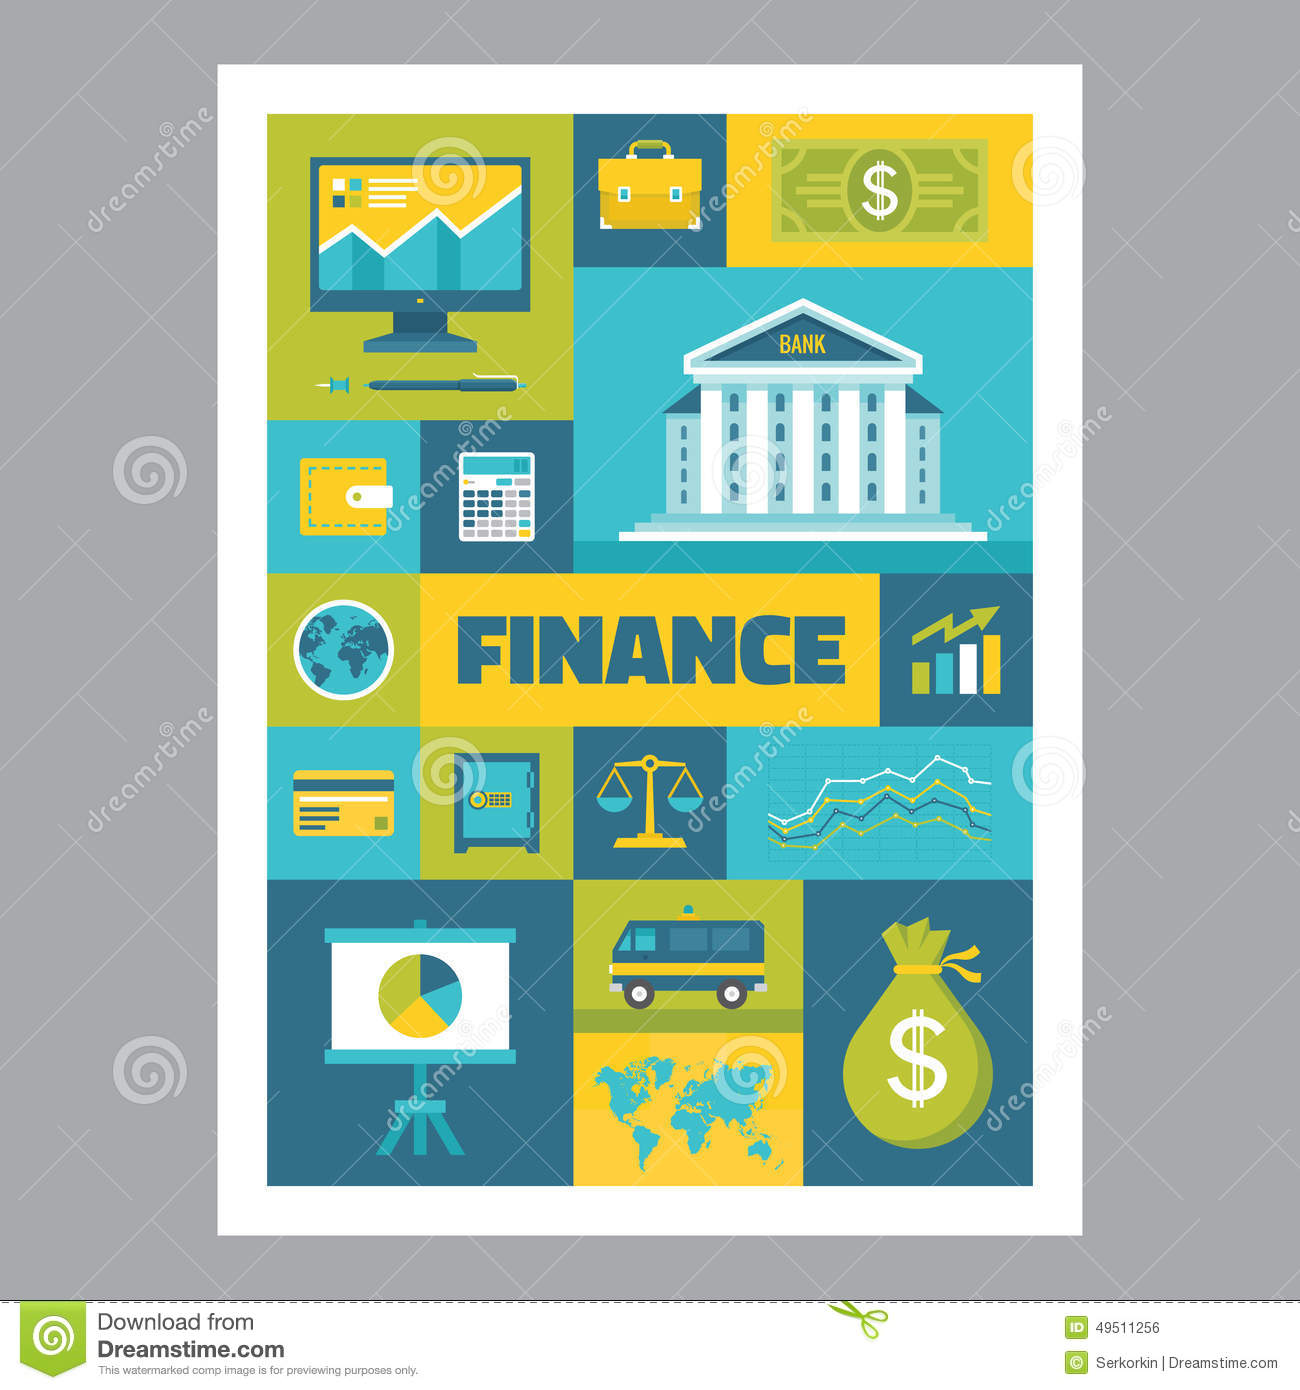 finance-mosaic-poster-icons-flat-design-style-vector-icons-set-illustrations-elements-49511256.jpg